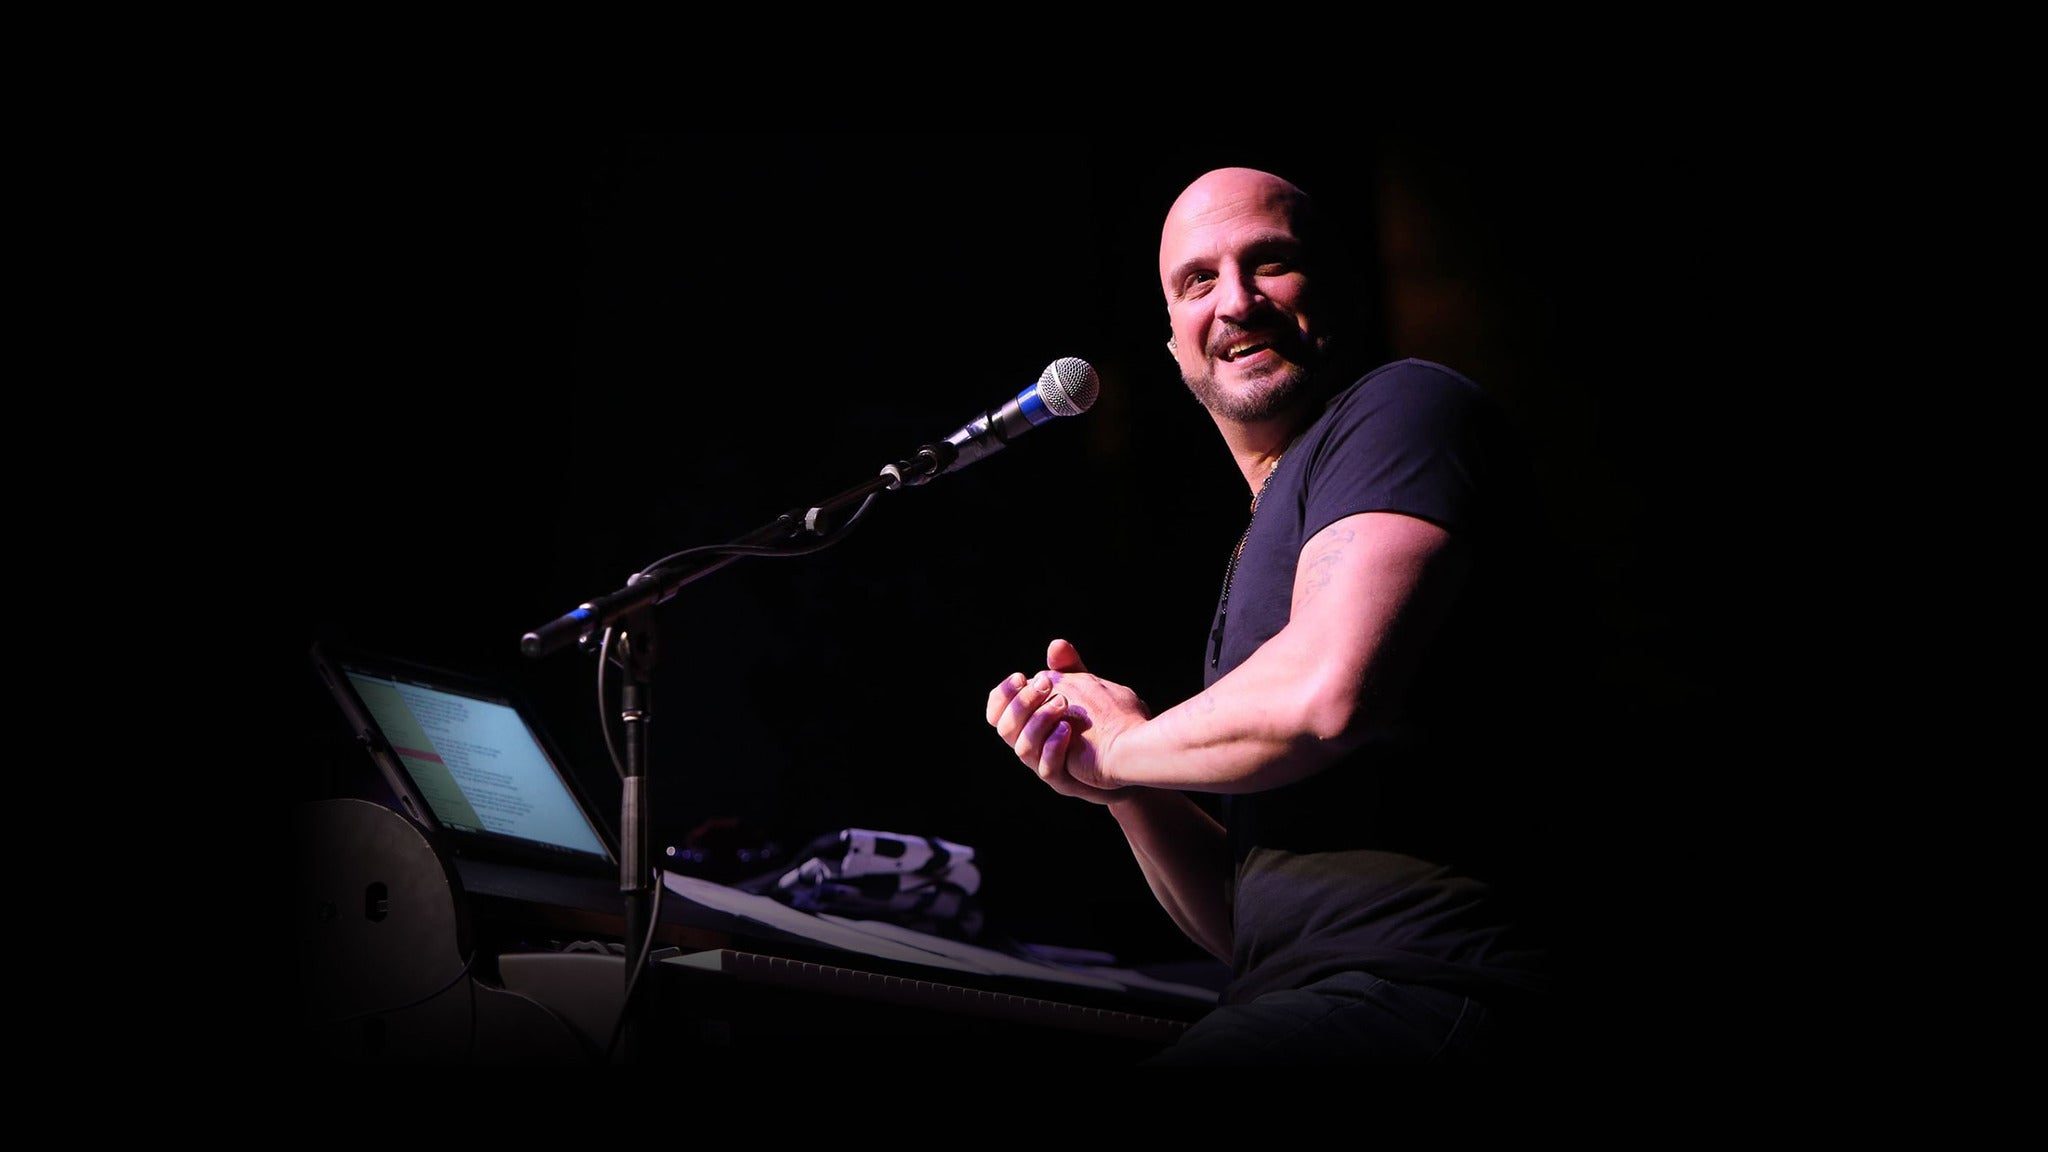 Mike Delguidice & Big Shot - Celebrating The Music Of Billy Joel presale code for concert tickets in Huntington, NY (The Paramount)